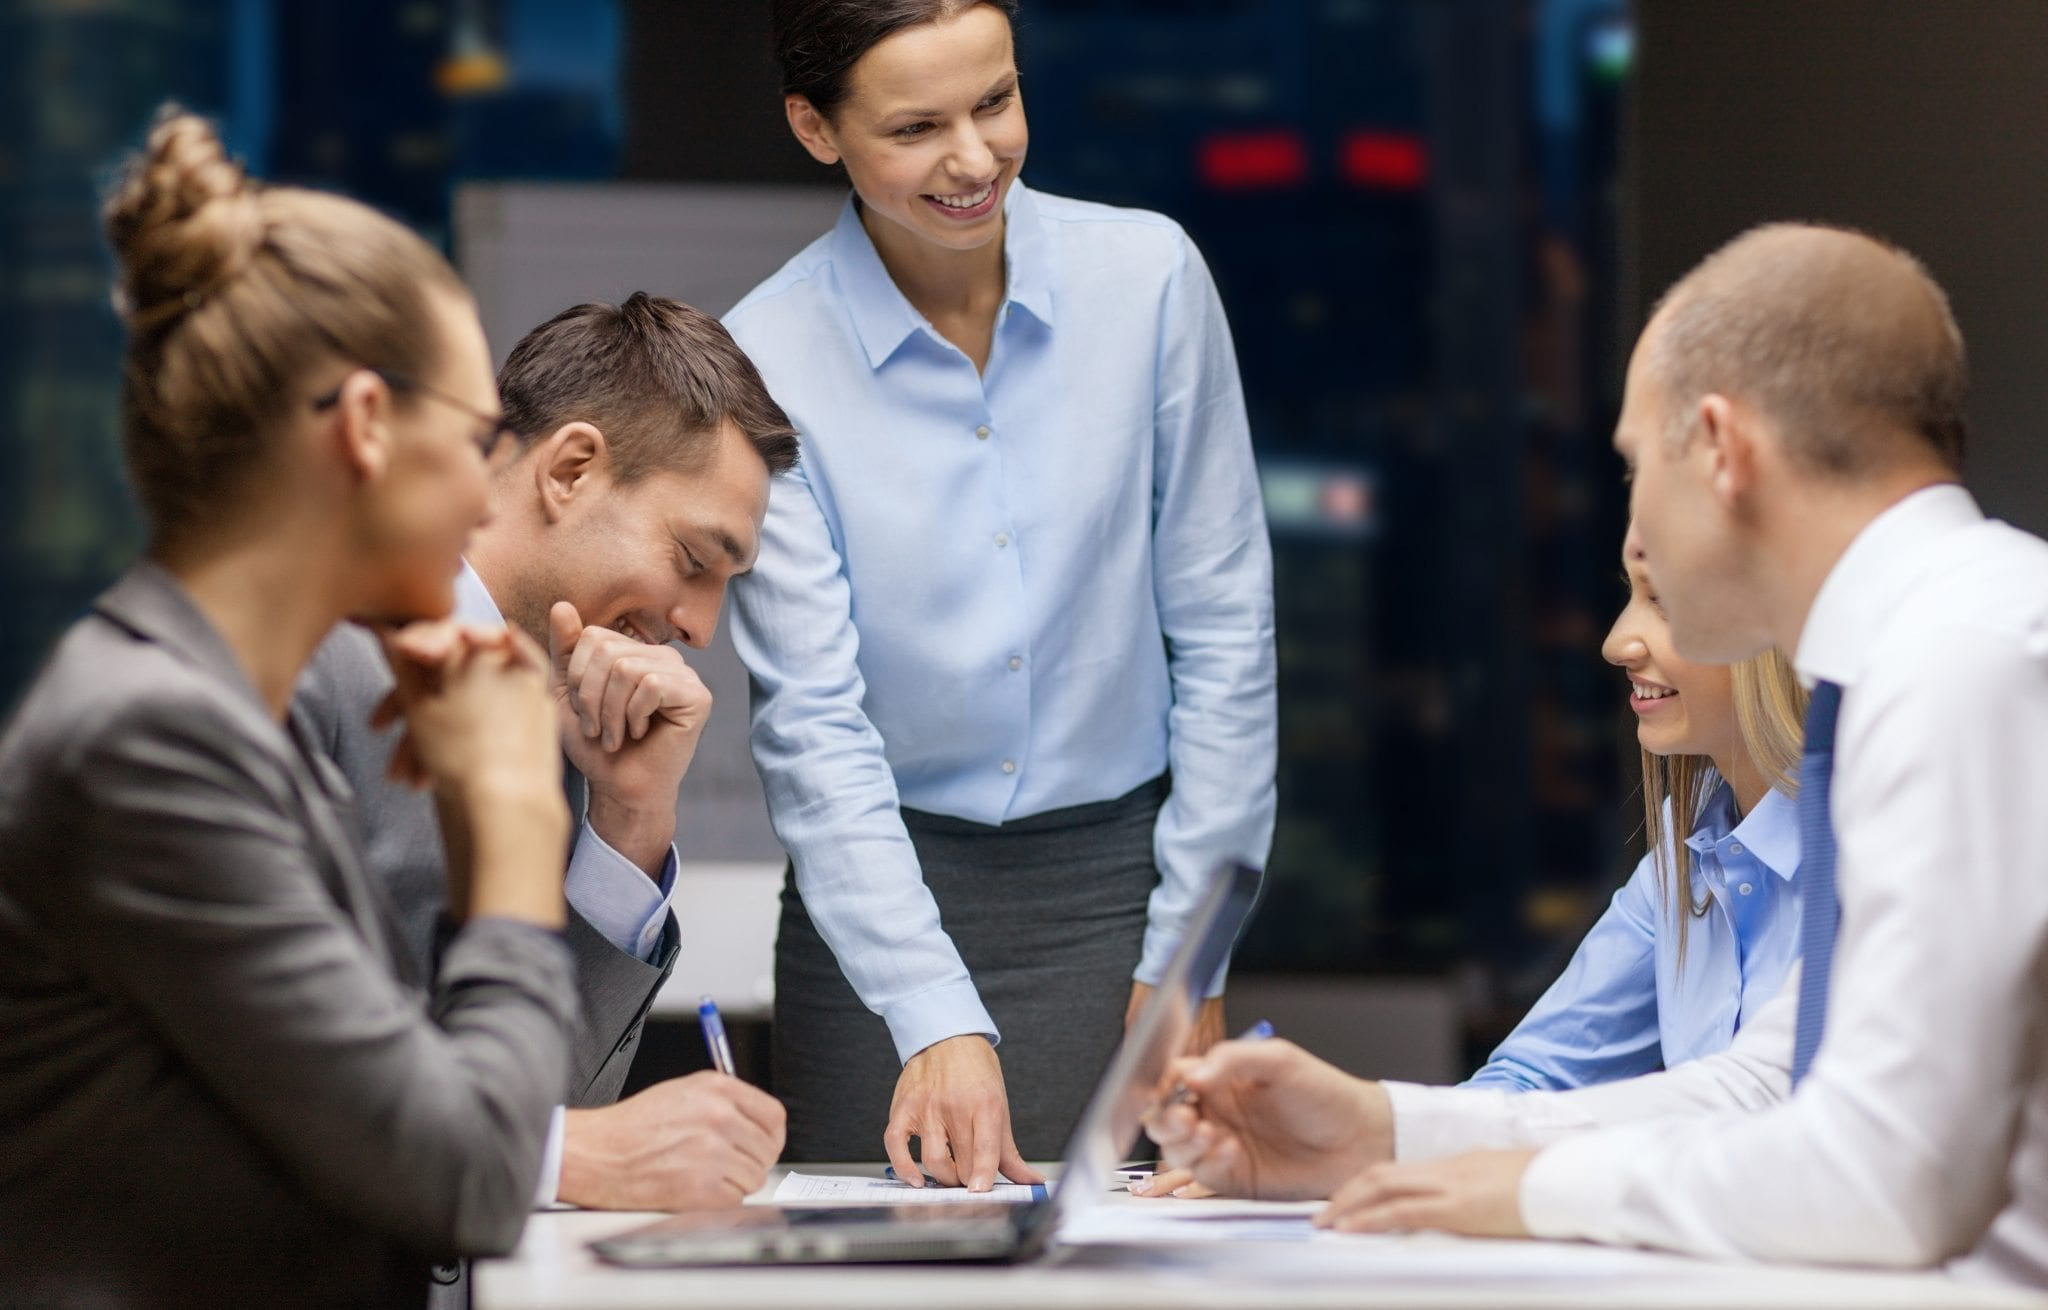 workplace trends changes